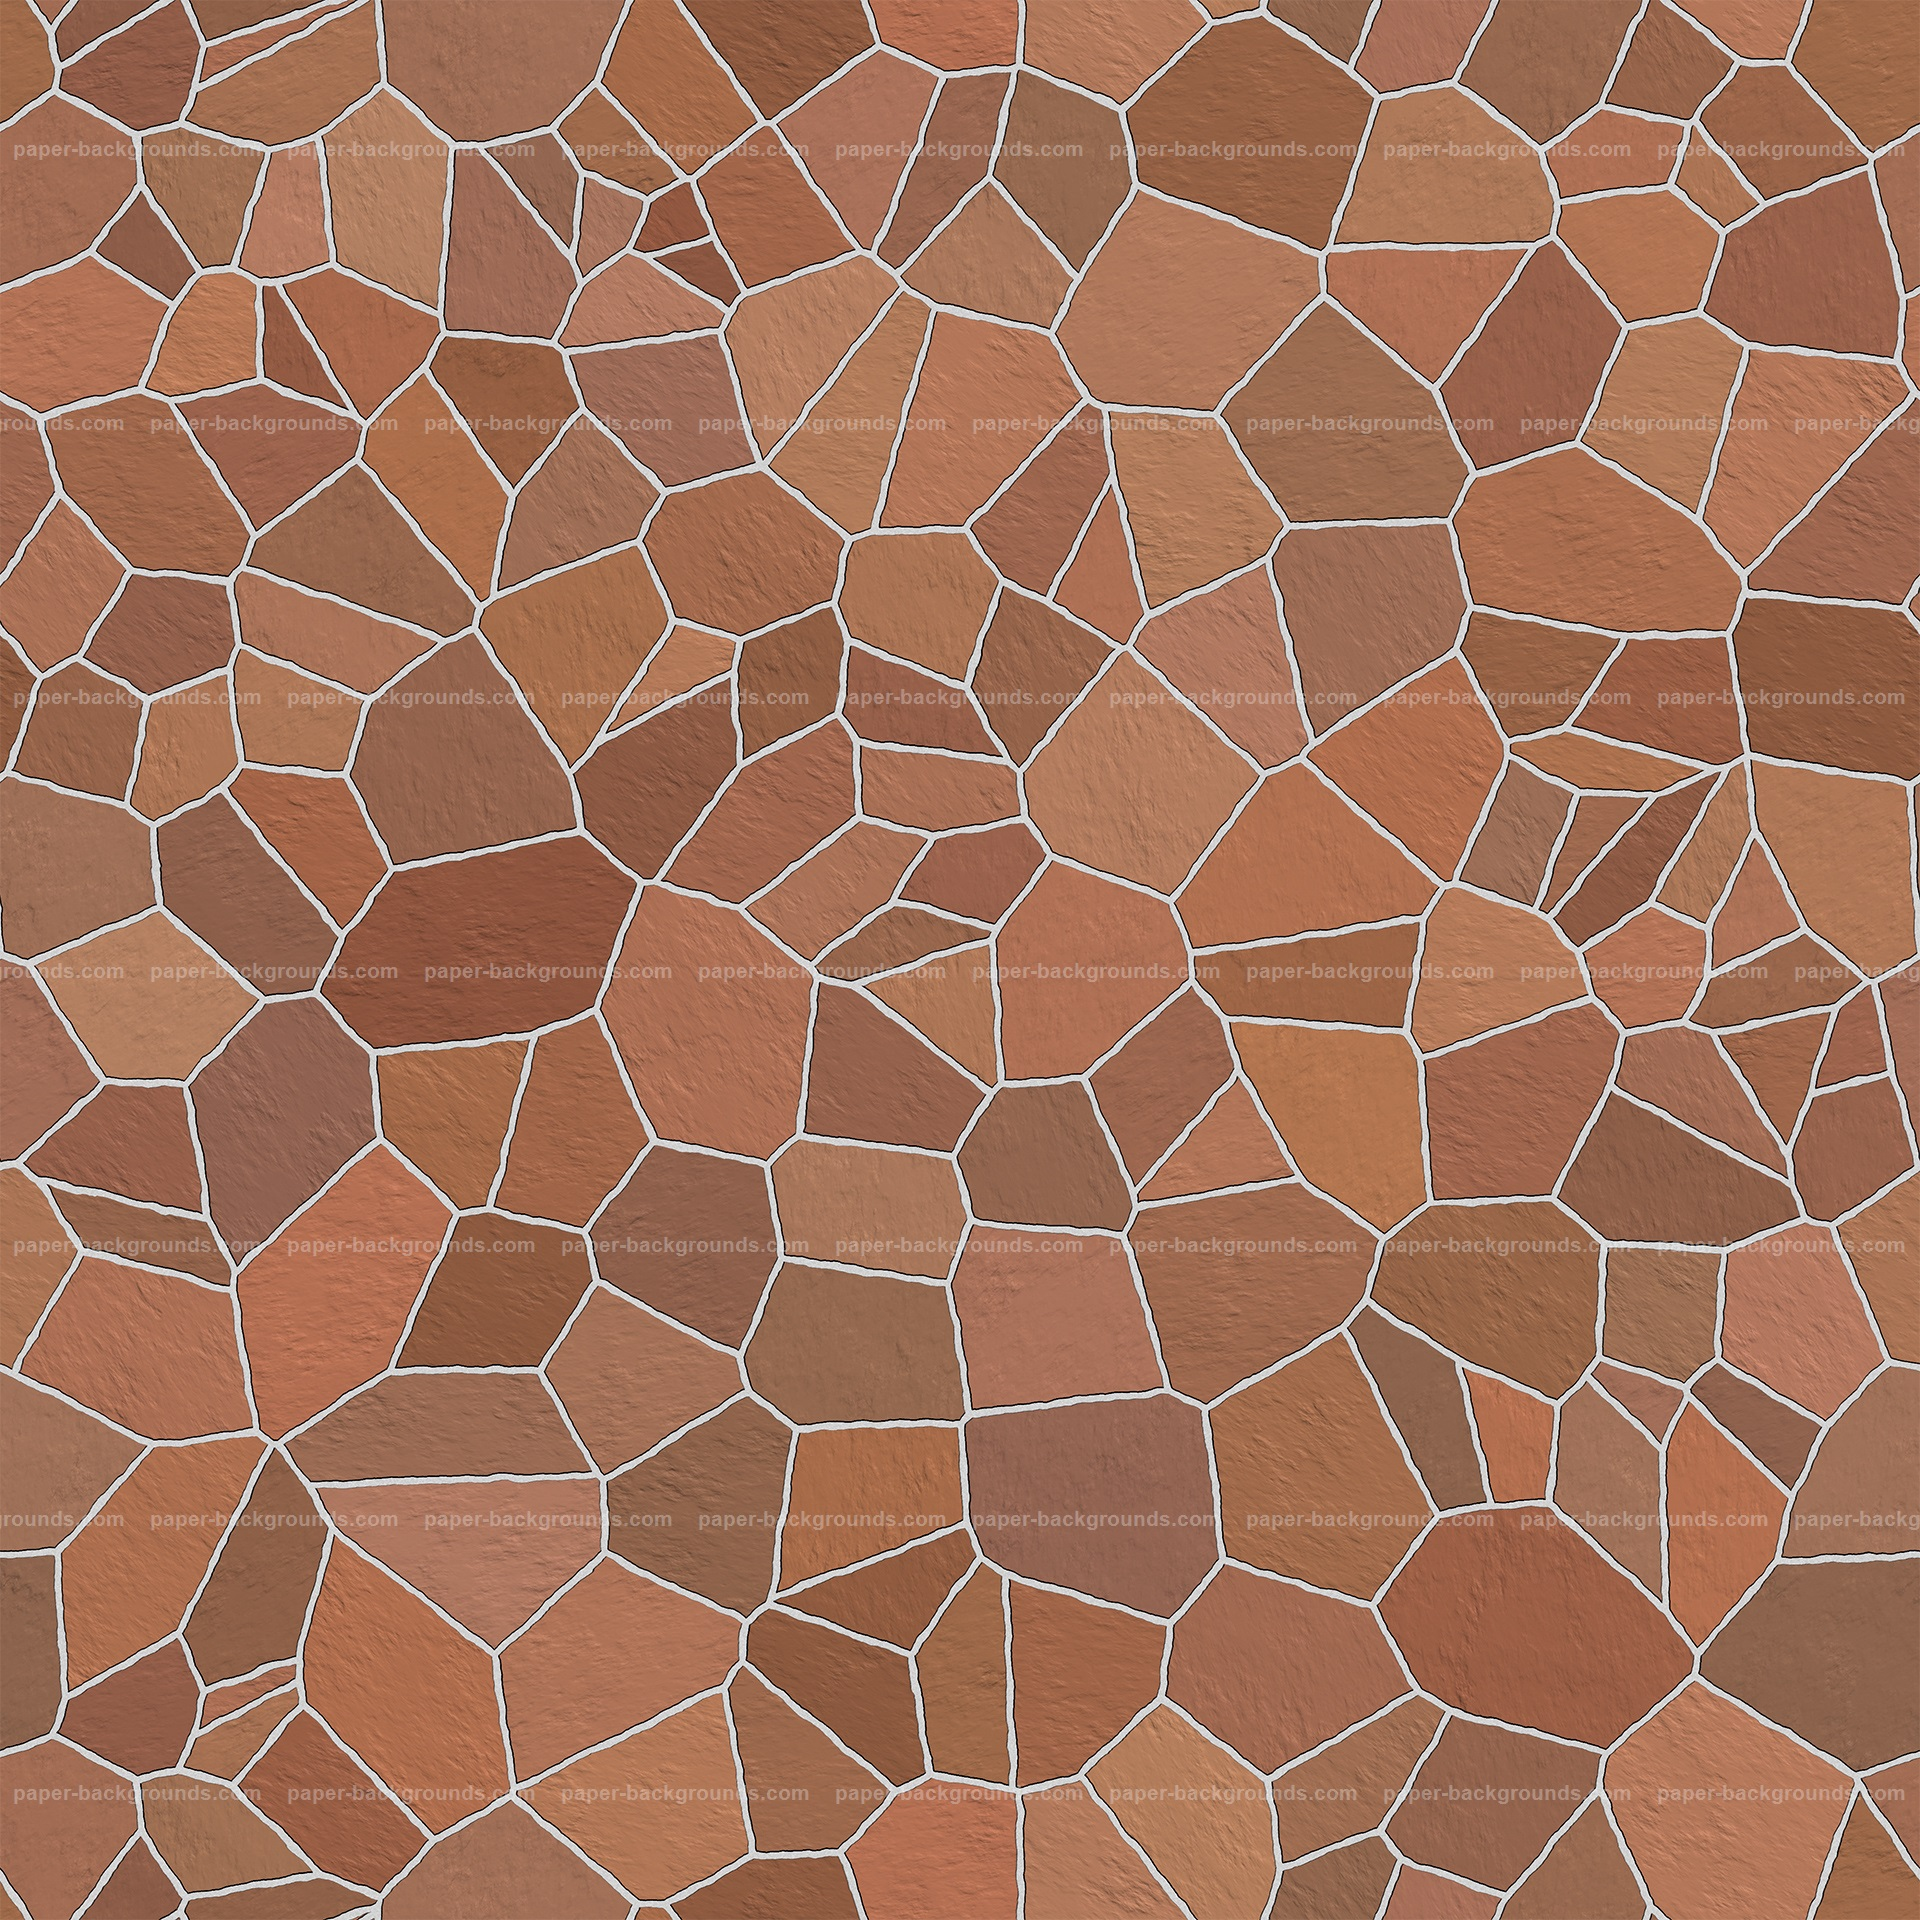 Seamless Colored Brown Stone Wall Texture HD